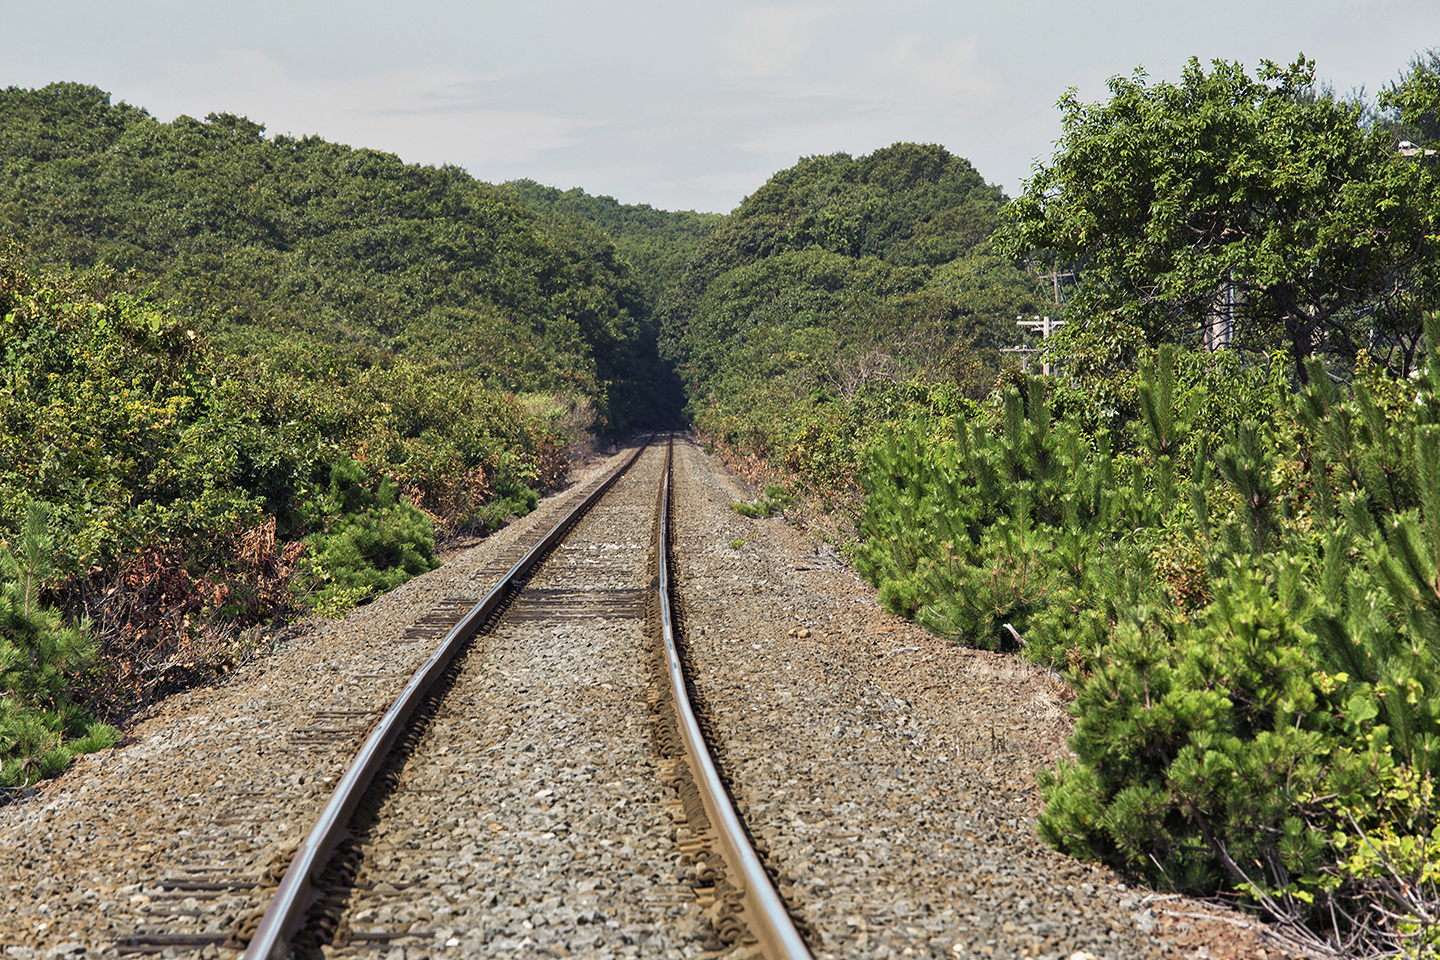 Landscape Photography Montauk Train Rail